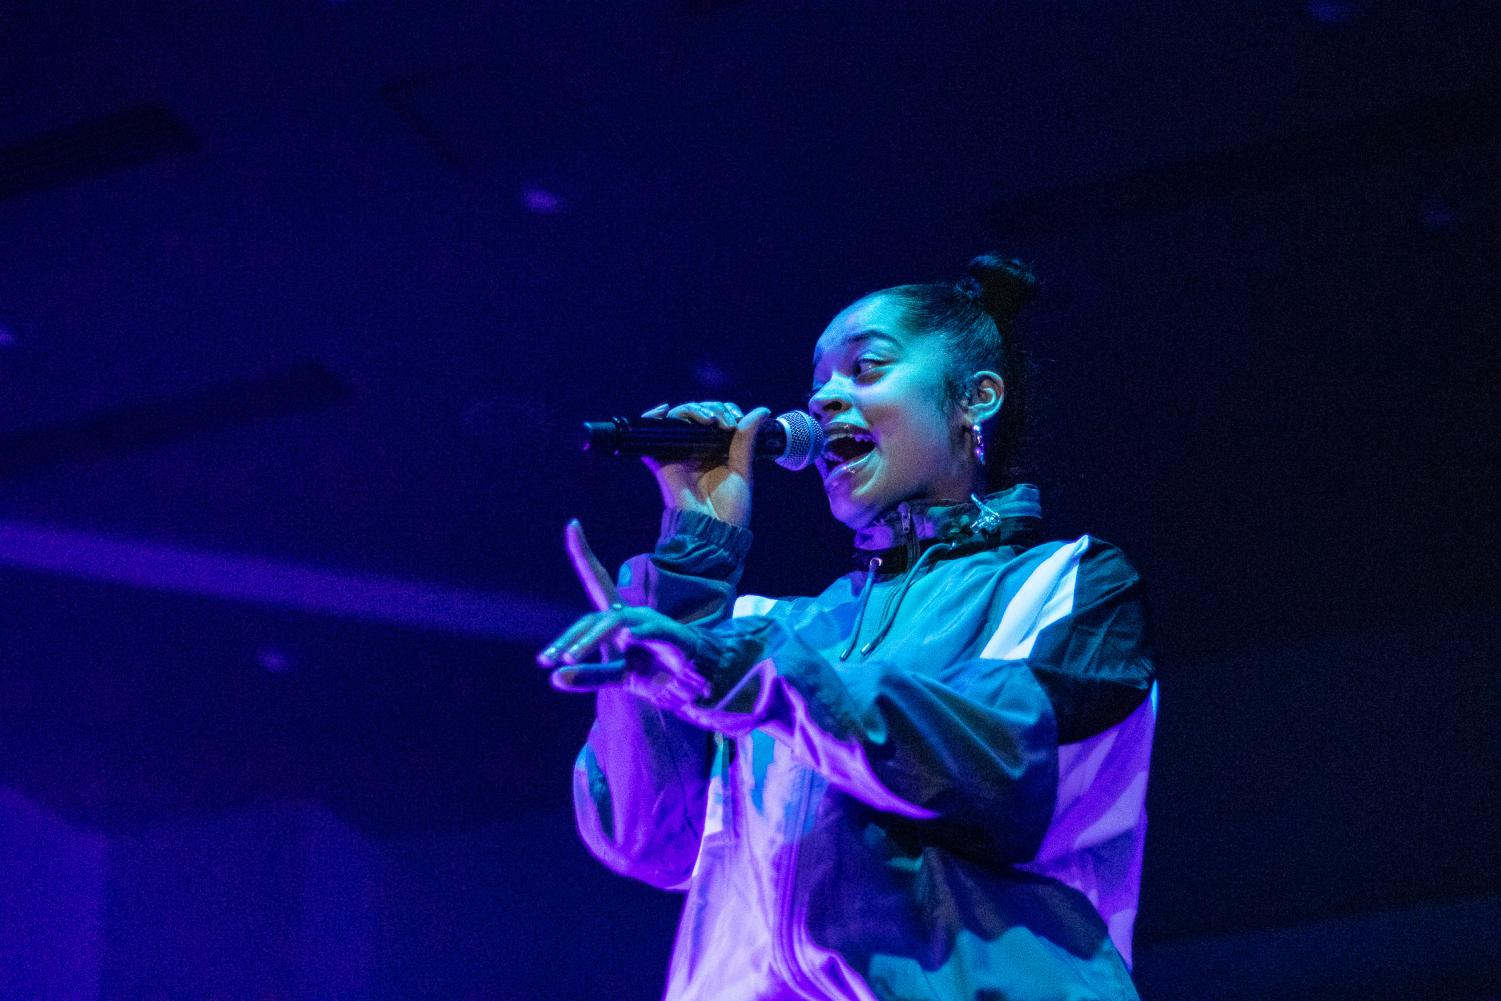 Ella Mai performs in the Union Ballroom on Oct. 18 2018. The concert sold out in 35 hours.